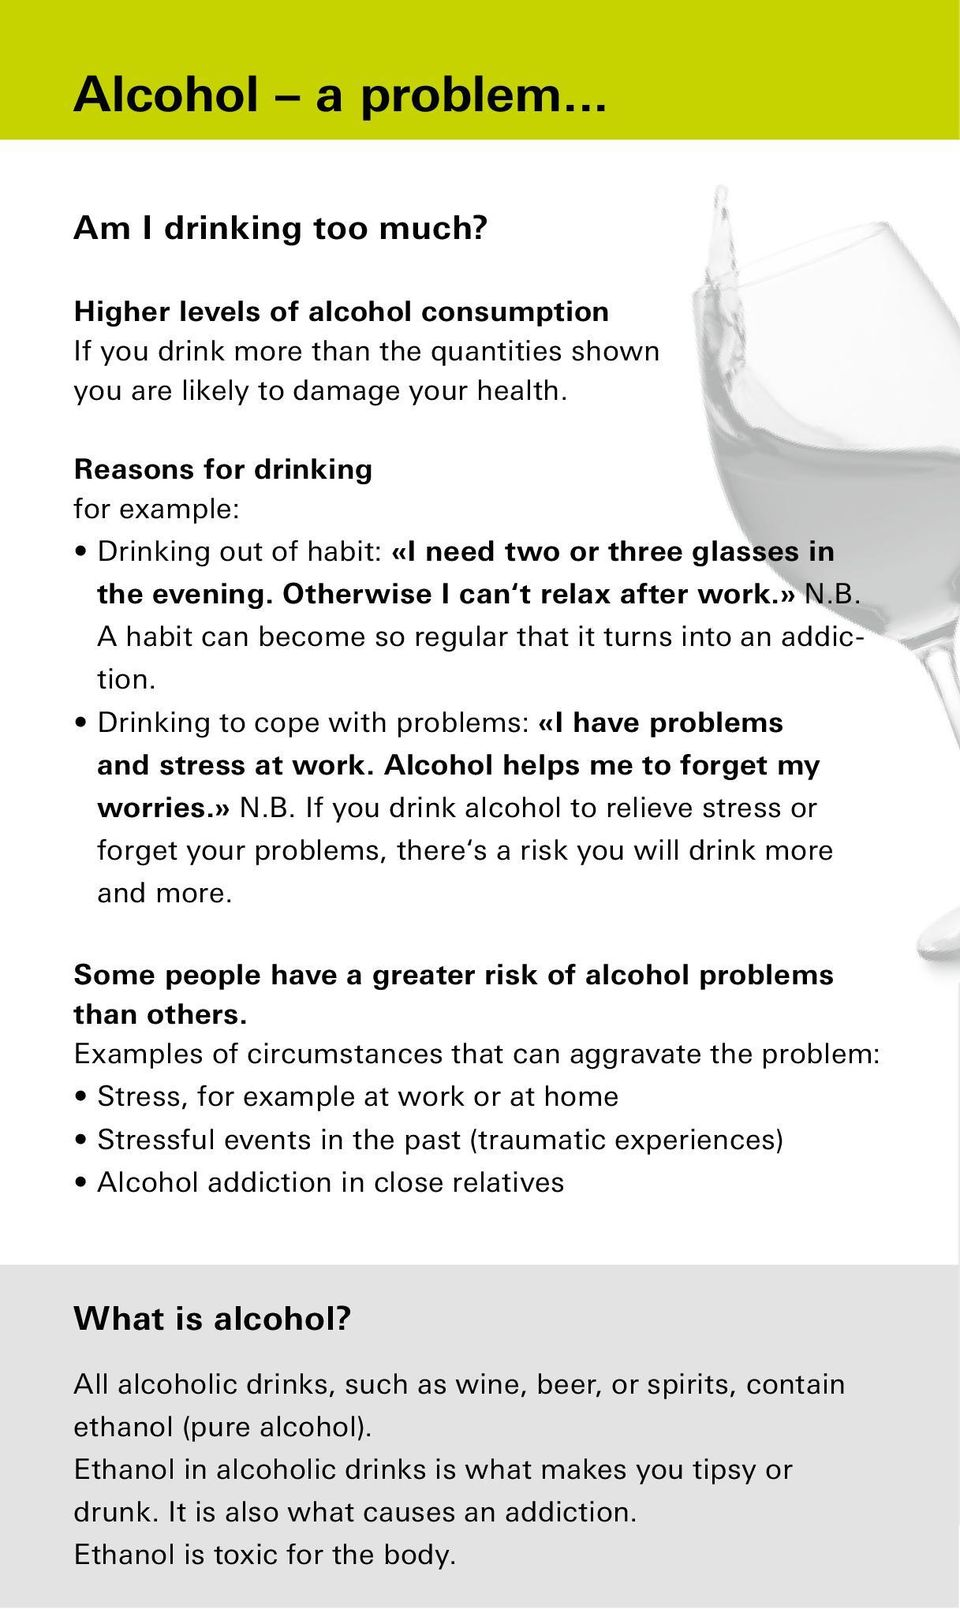 Alcohol addiction. How to cope with trouble